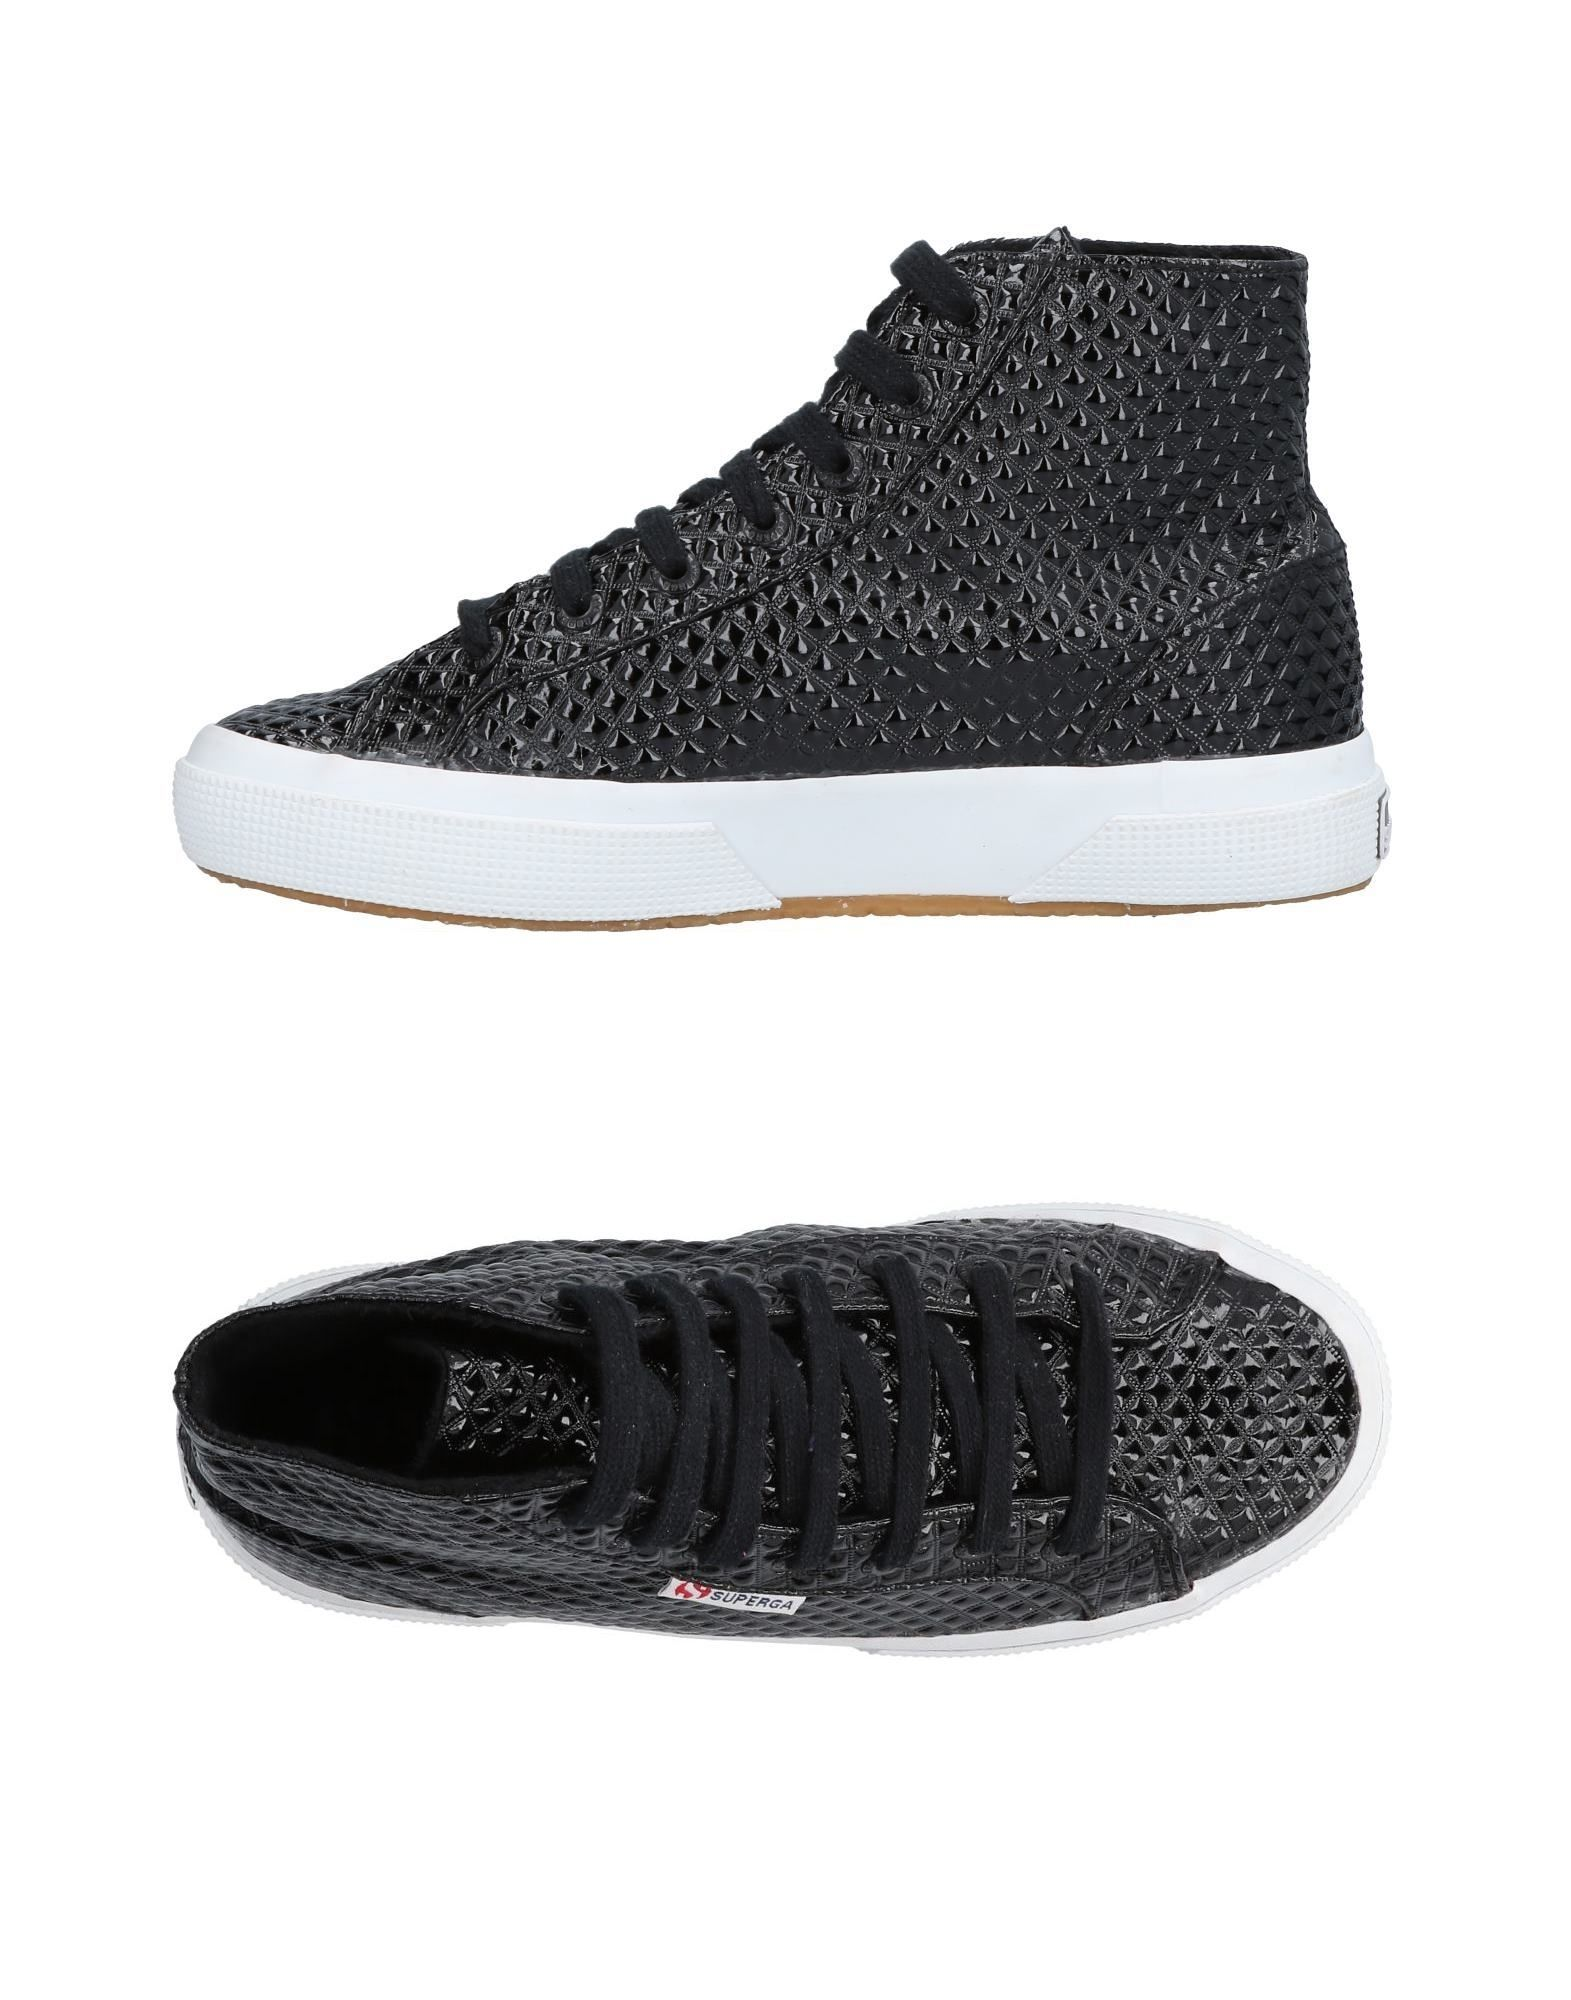 Baskets Superga® Superga® Femme - Baskets Superga® Baskets Noir Super rabais c45074